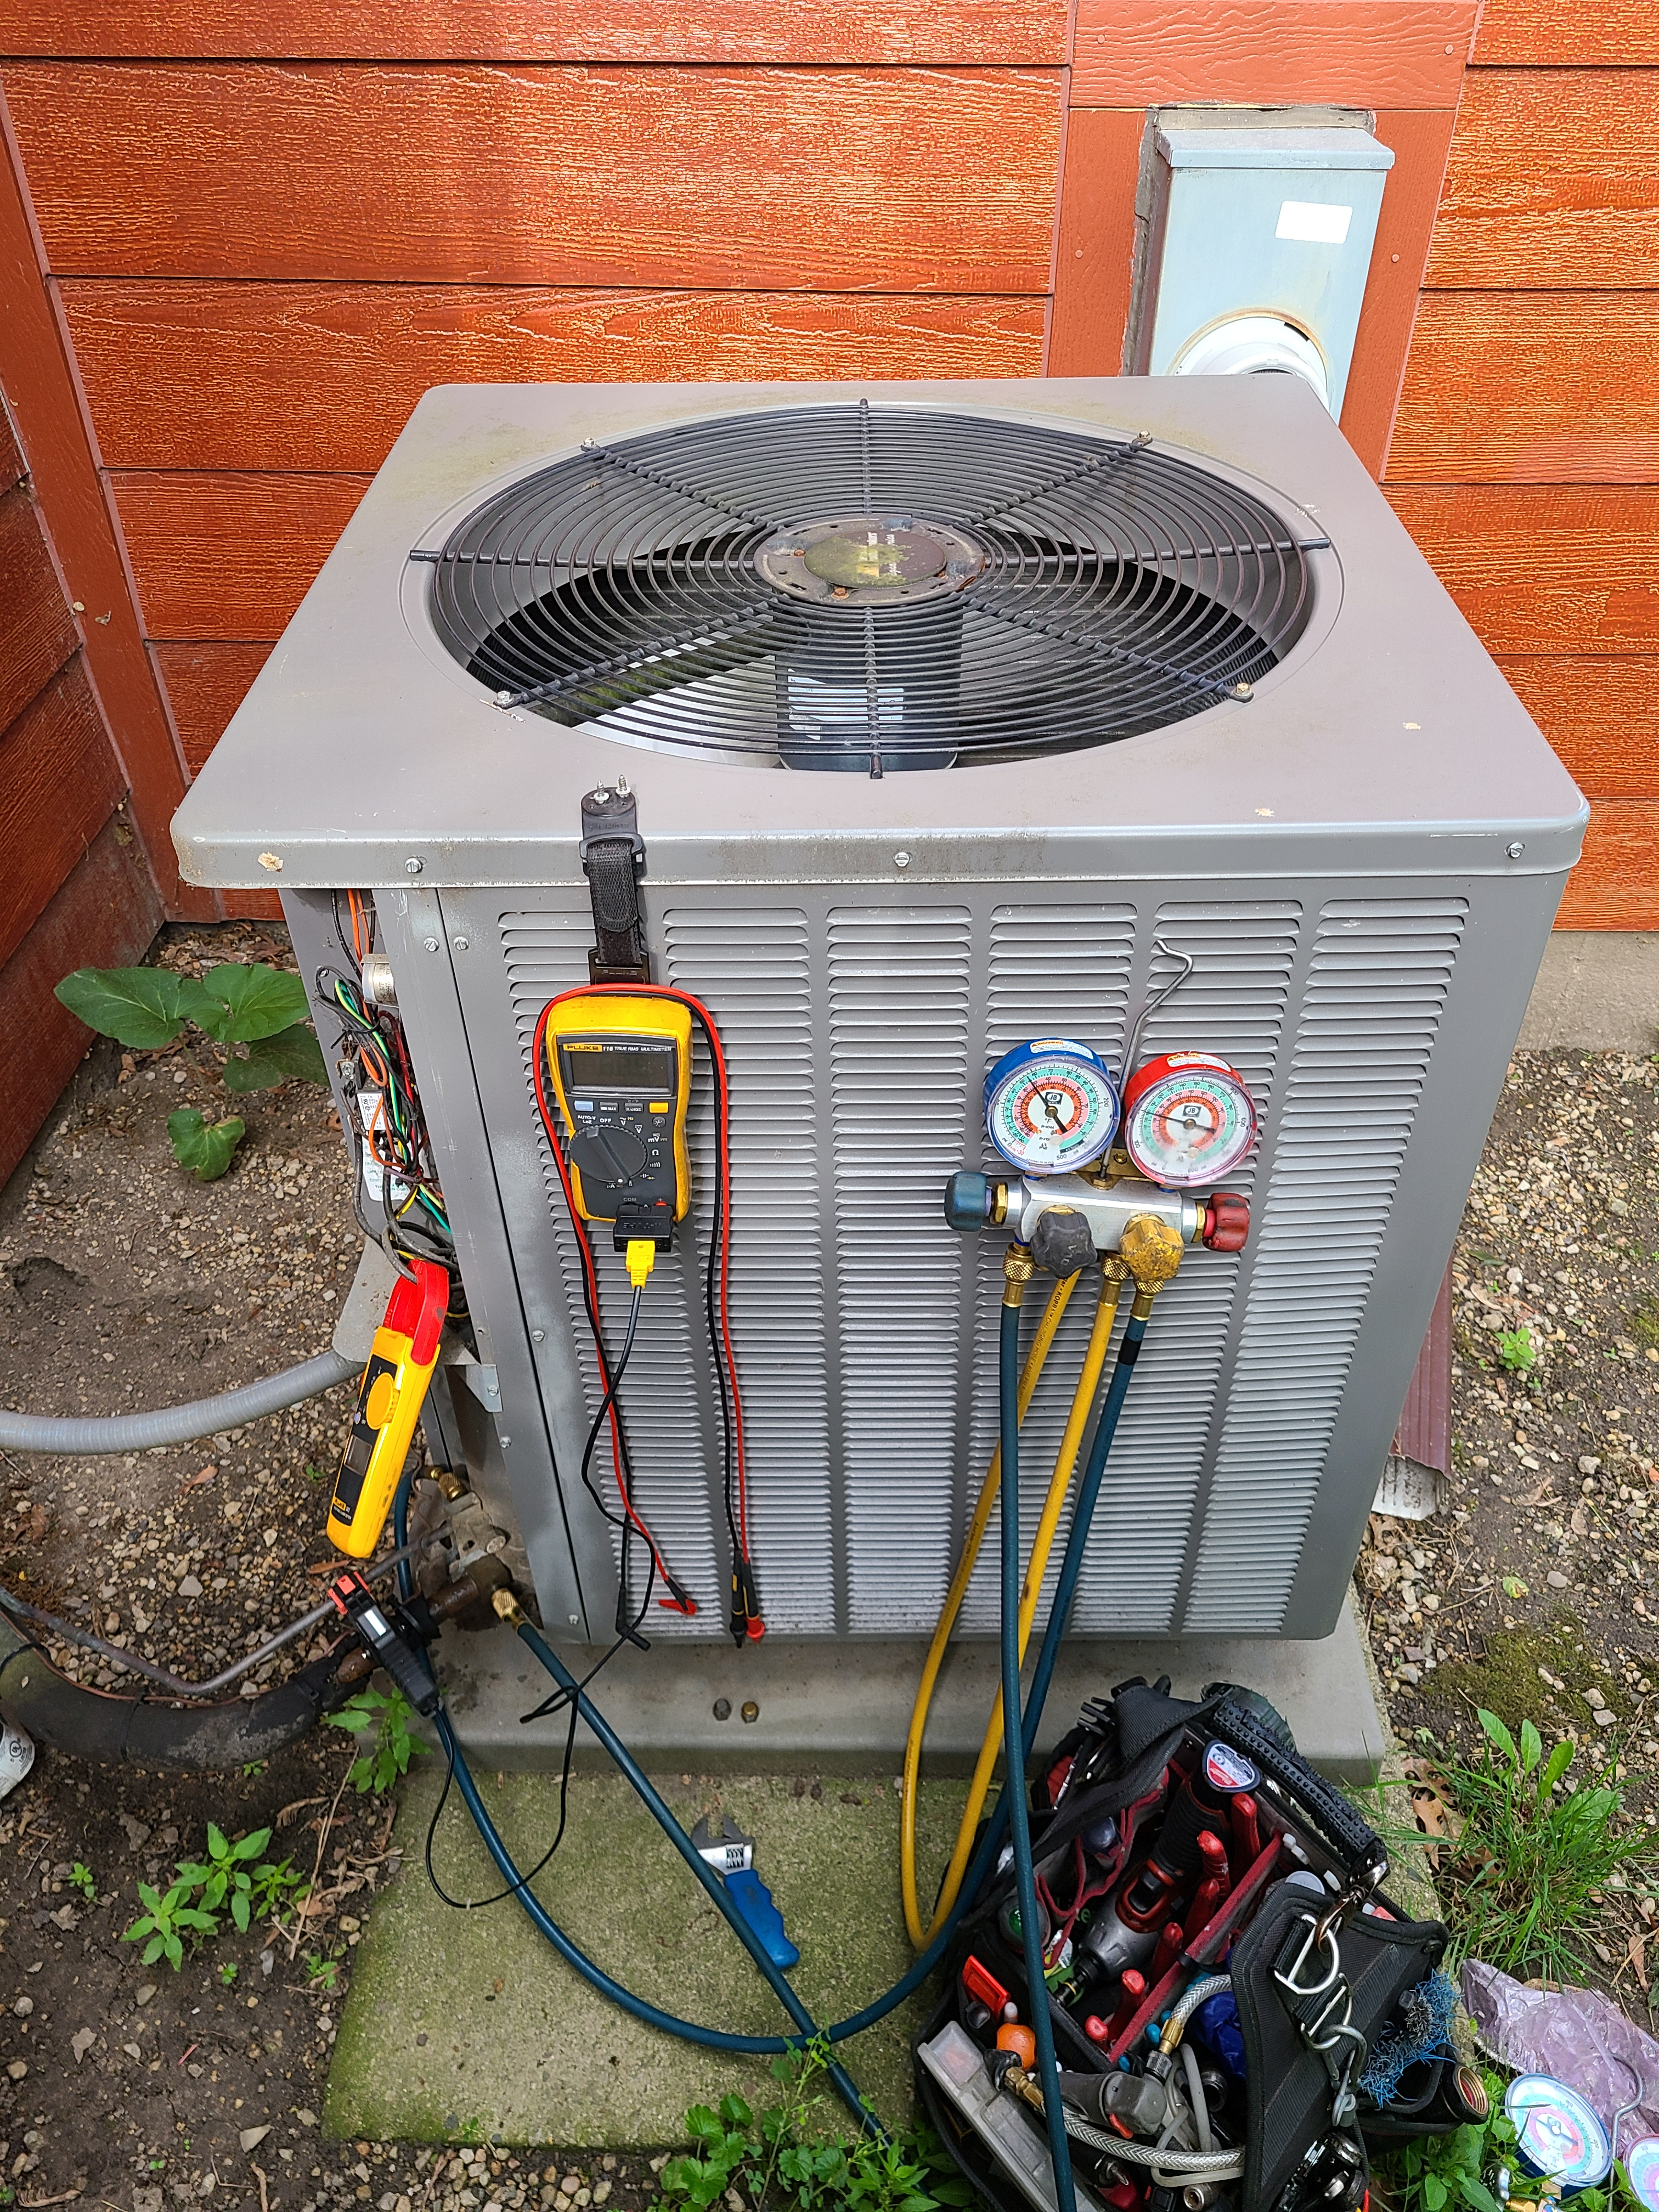 Ruud ac maintenance and repair. System cleaned and checked and ready for summer.